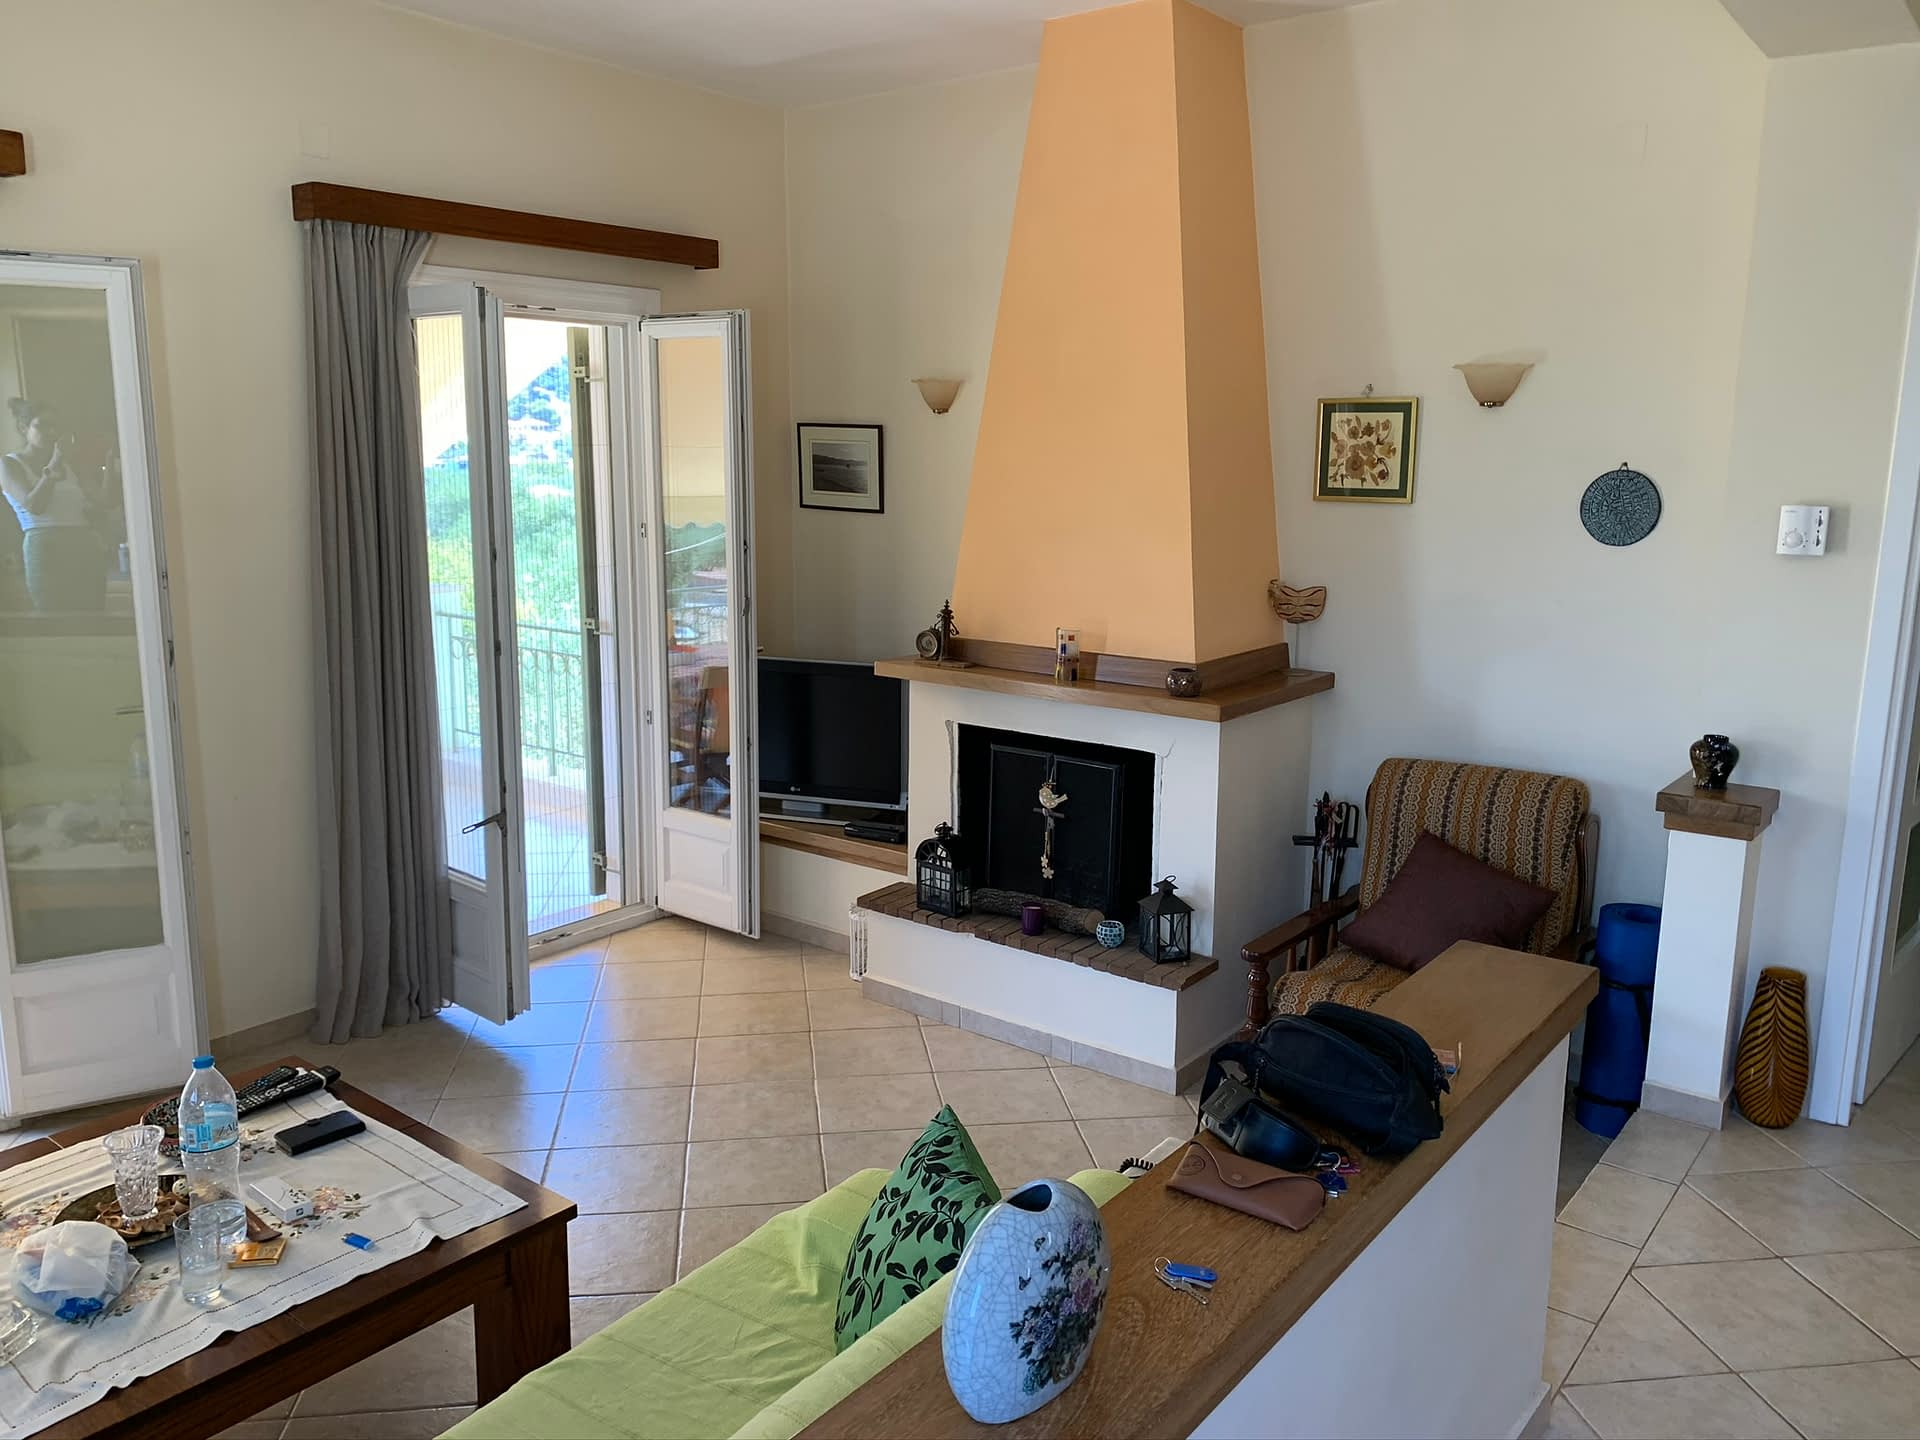 Interior living of house for sale in Ithaca Greece Vathi